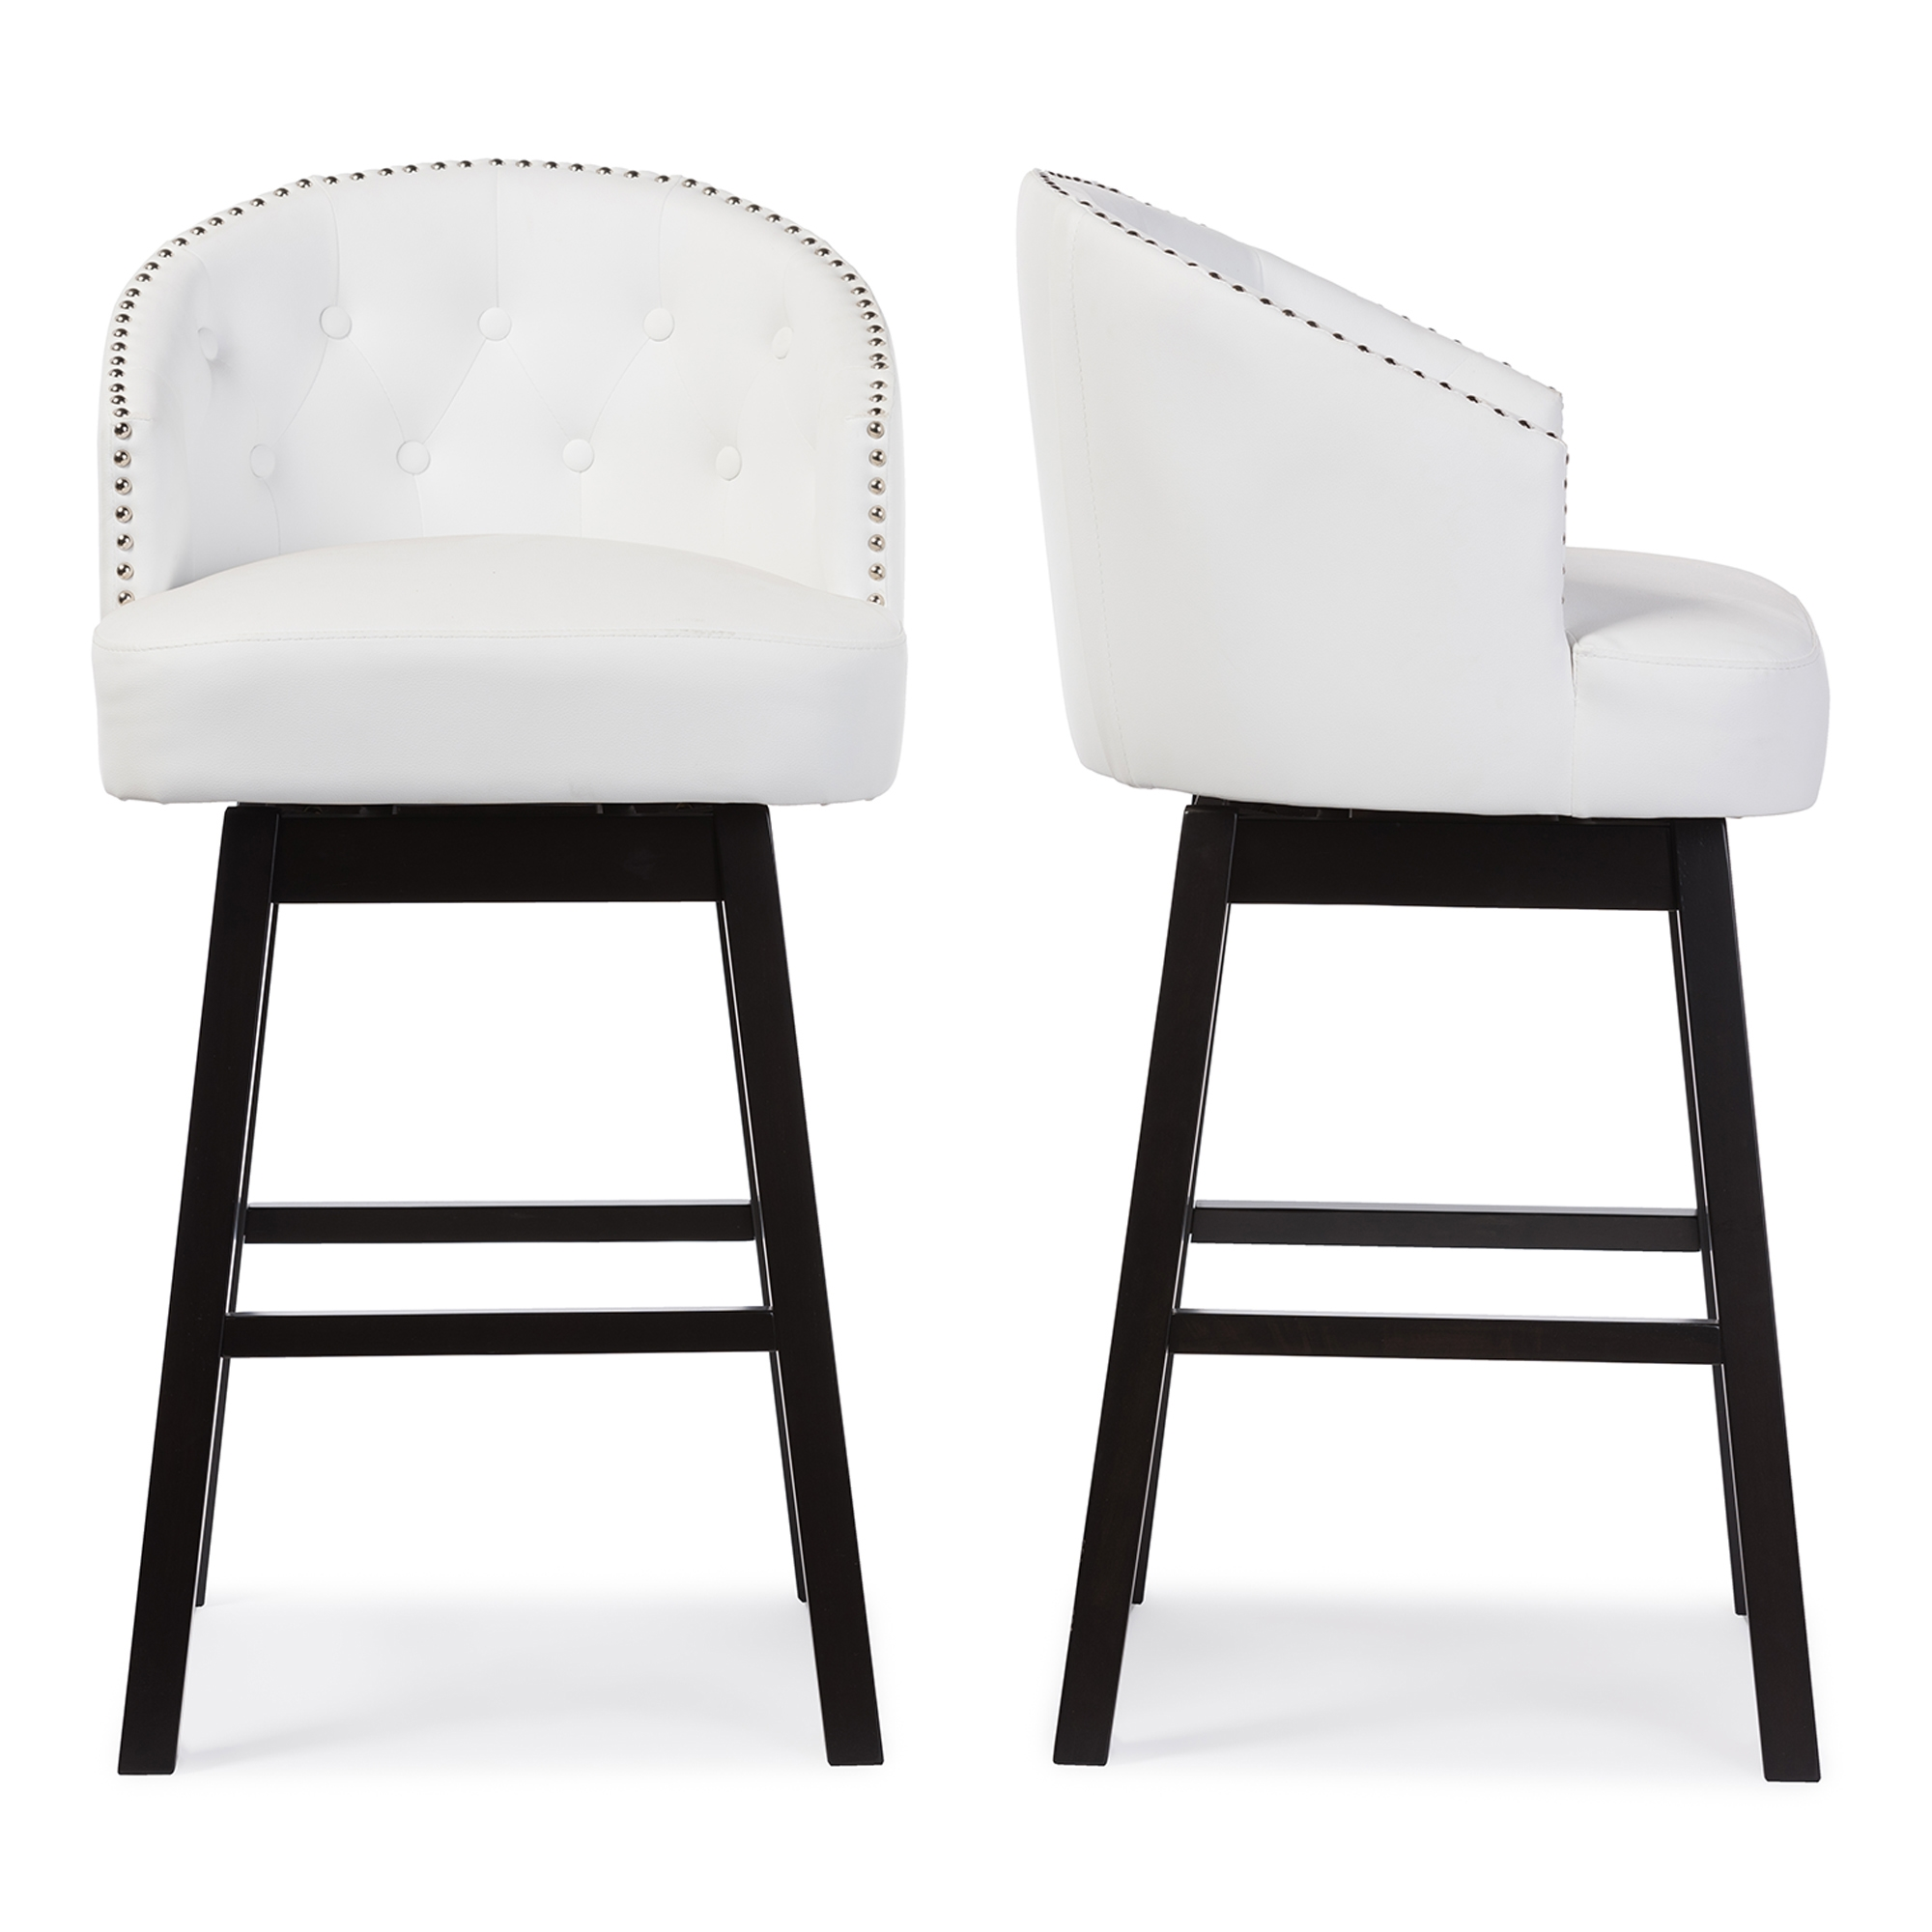 Charming Baxton Studio Avril Modern And Contemporary White Faux Leather Tufted Swivel  Barstool With Nail Heads Trim